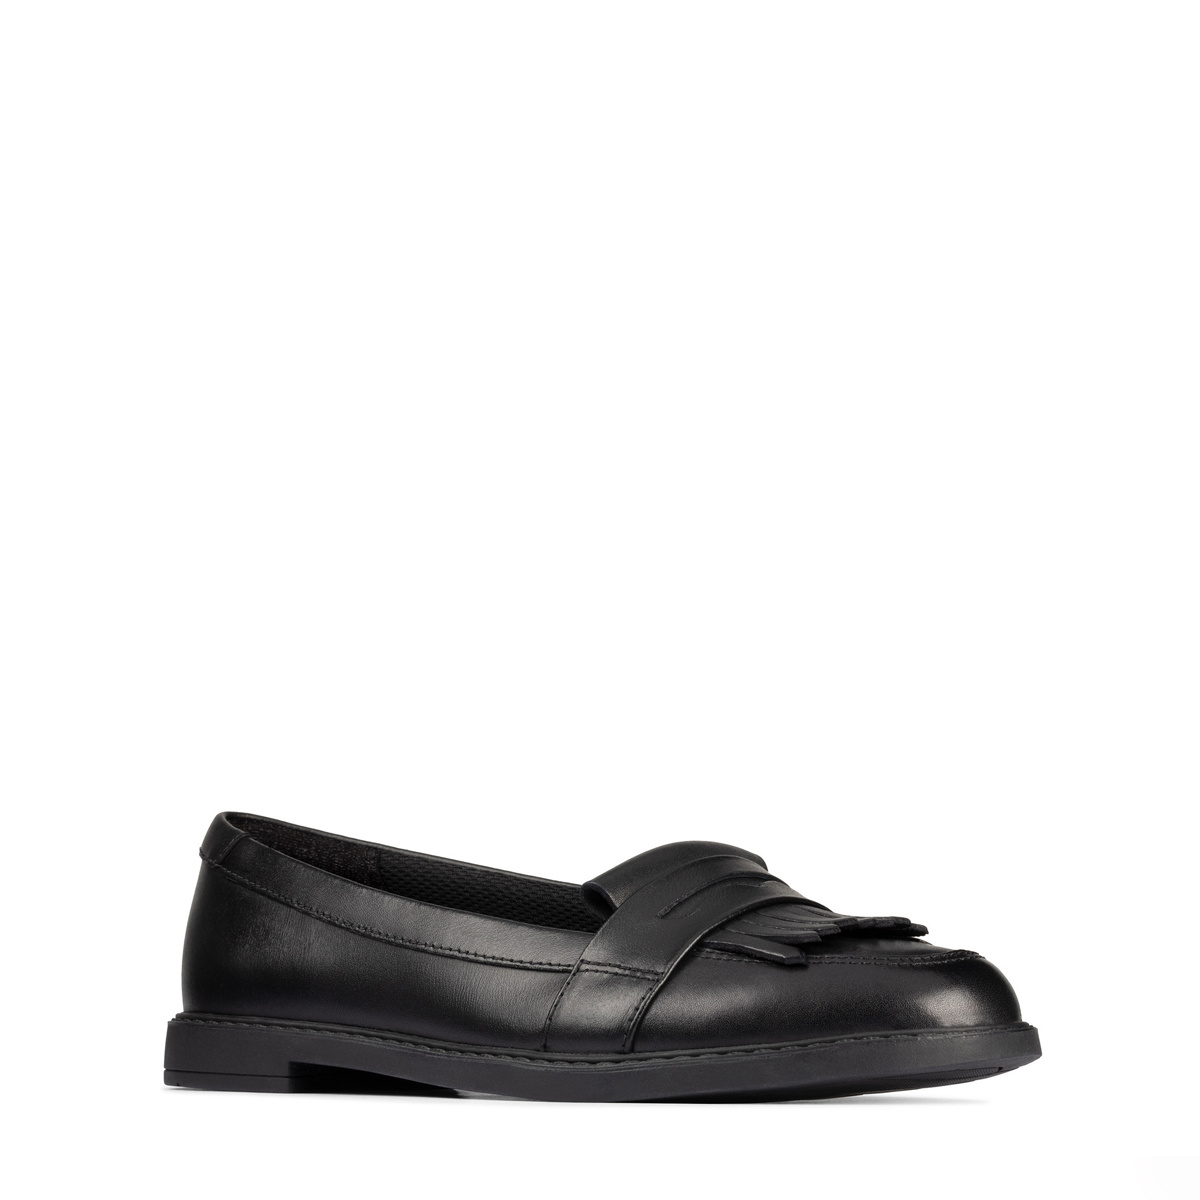 Clarks Scala Bright Black Leather